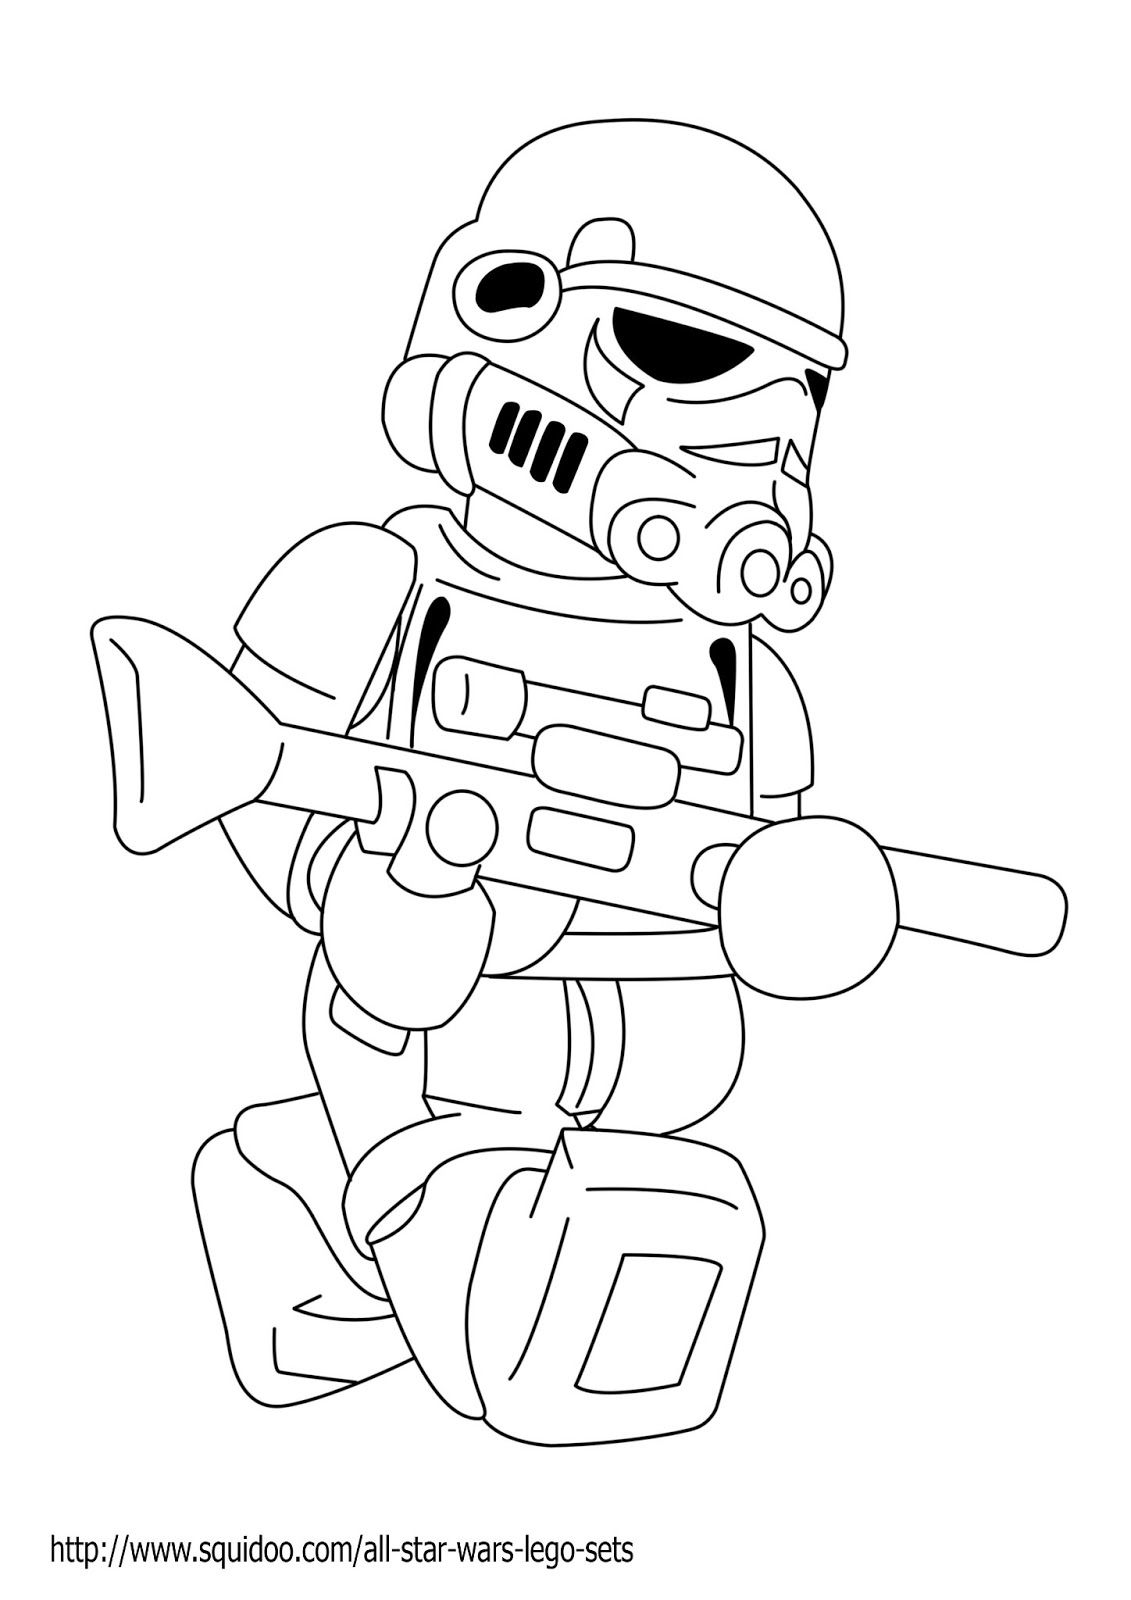 Lego Figure Coloring Lego Minifigure Colouring Pages Page